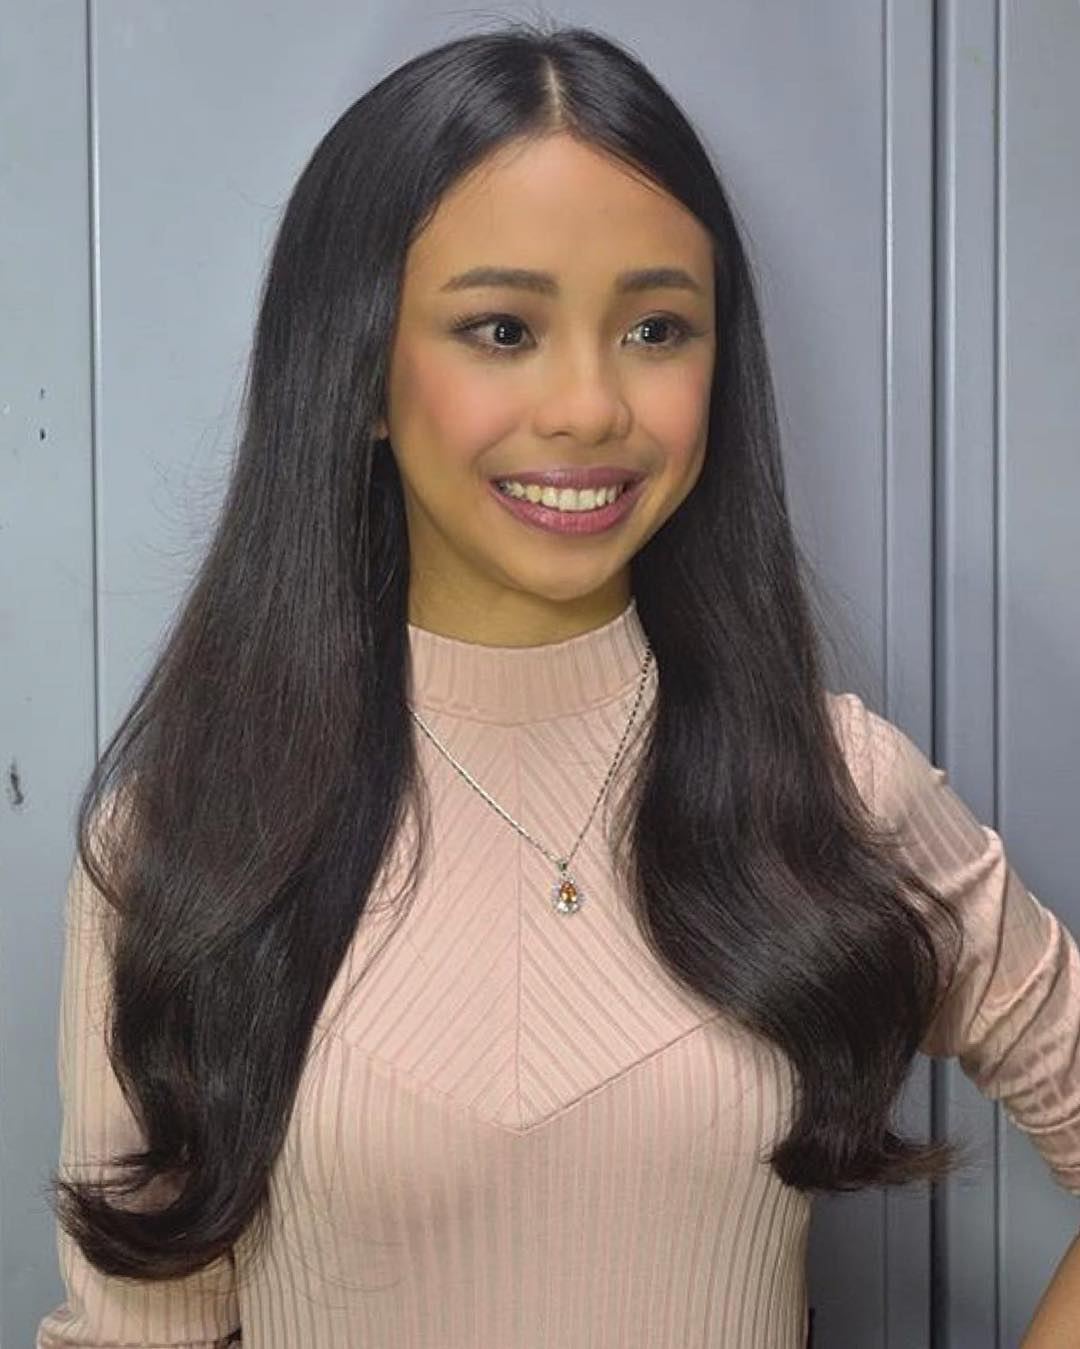 31 photos of Maymay that show any fan girl's dream can be a reality!